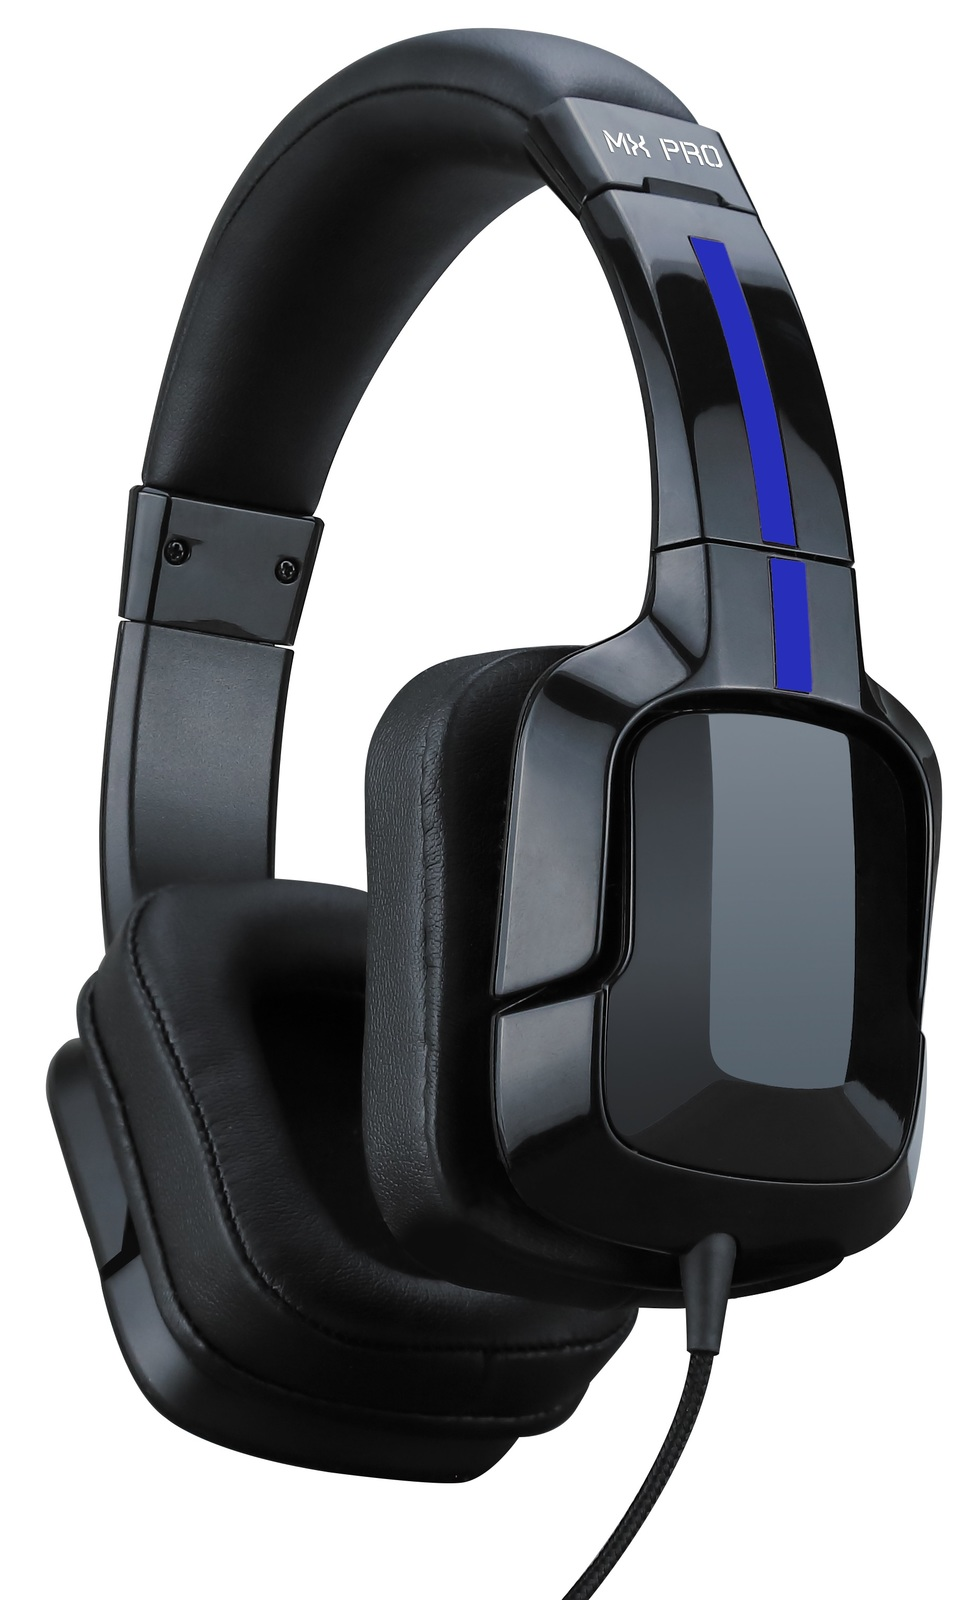 Playmax MX PRO Headset for PS4 for PS4 image